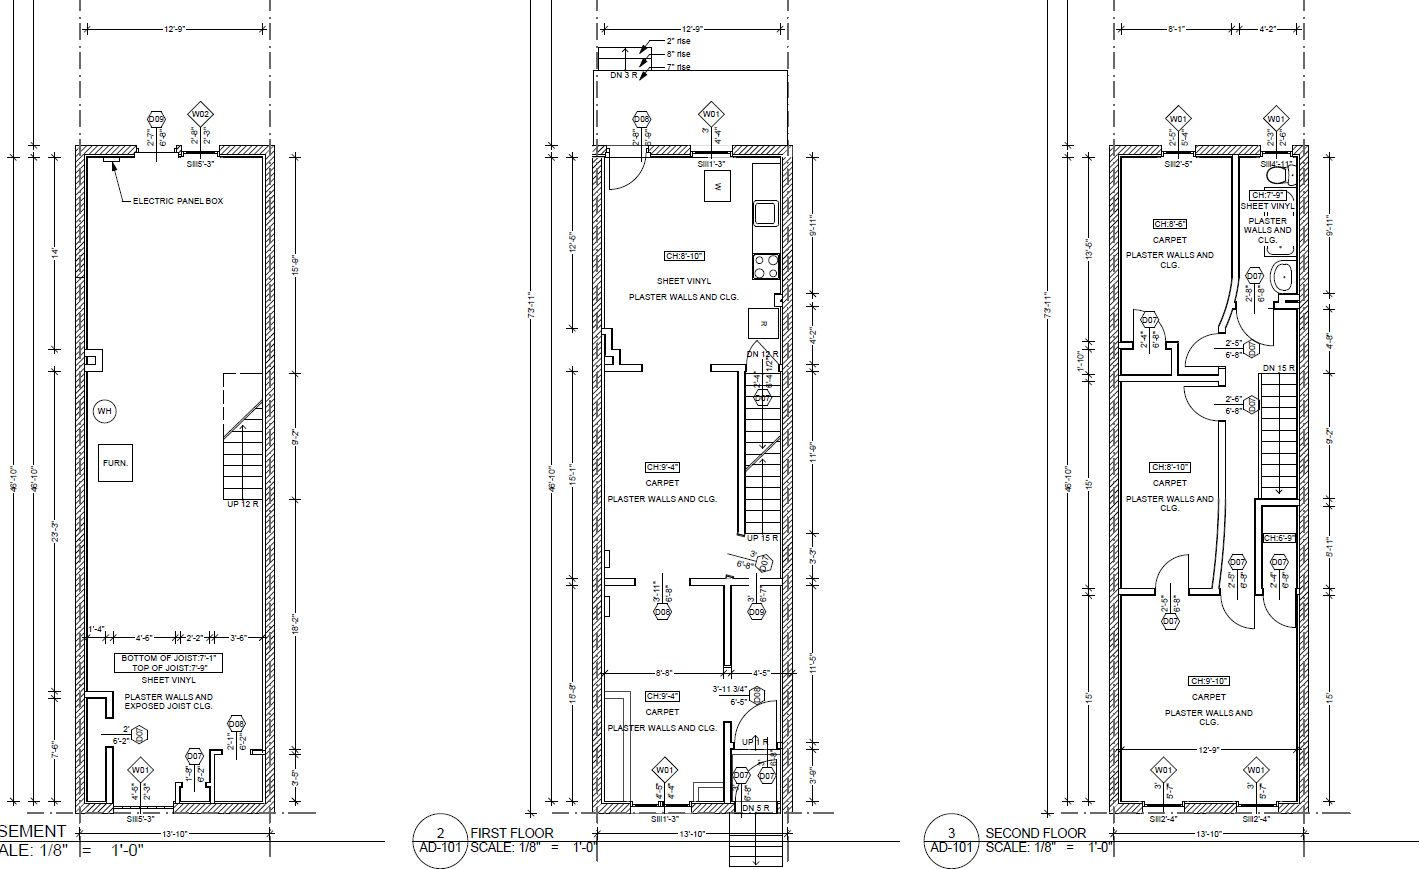 Twostory 1420 869 narrow house plans for Narrow house plans